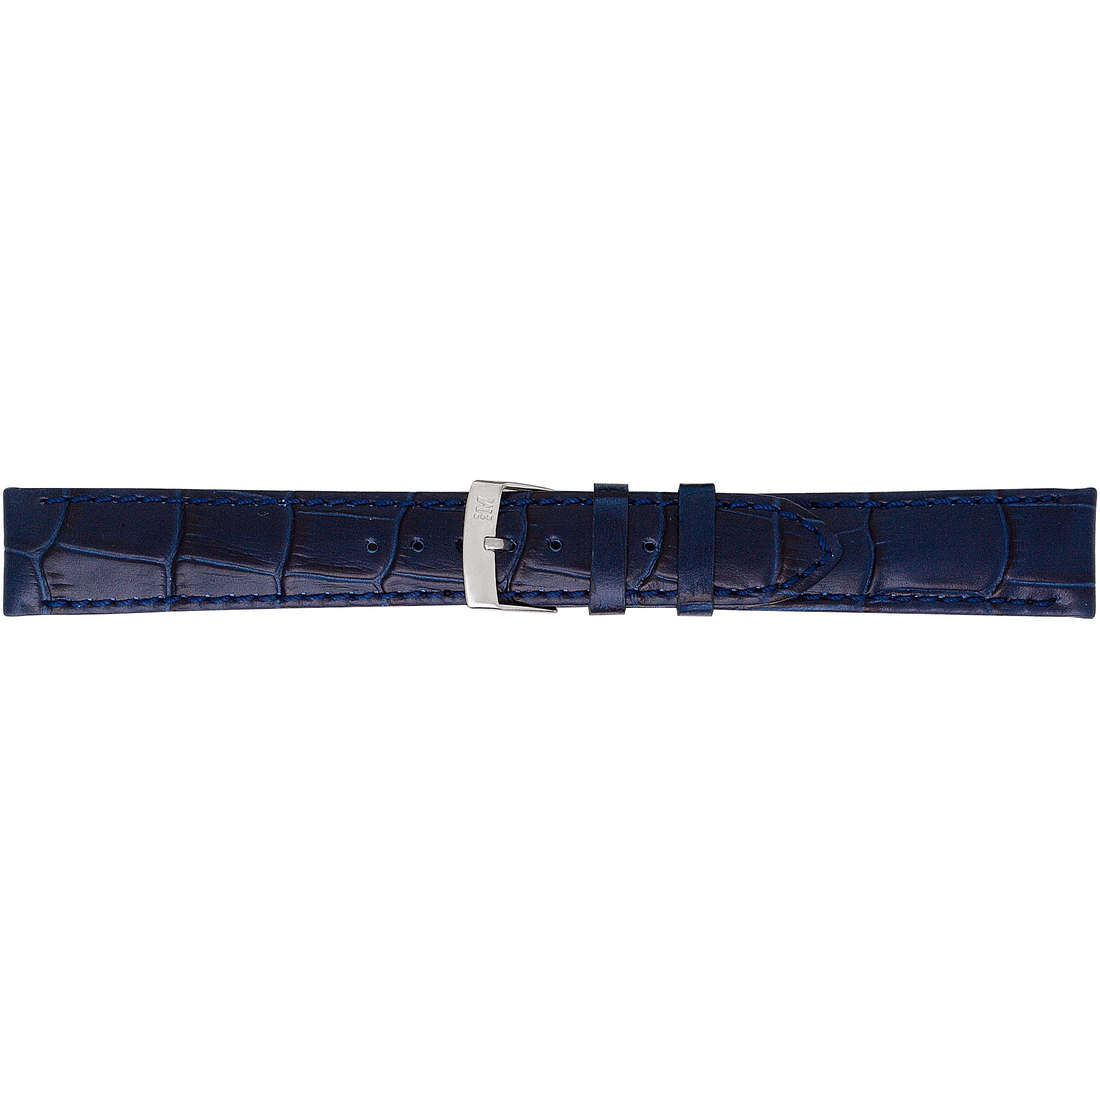 watch watch bands watch straps man Morellato Performance A01X2704656062CR20